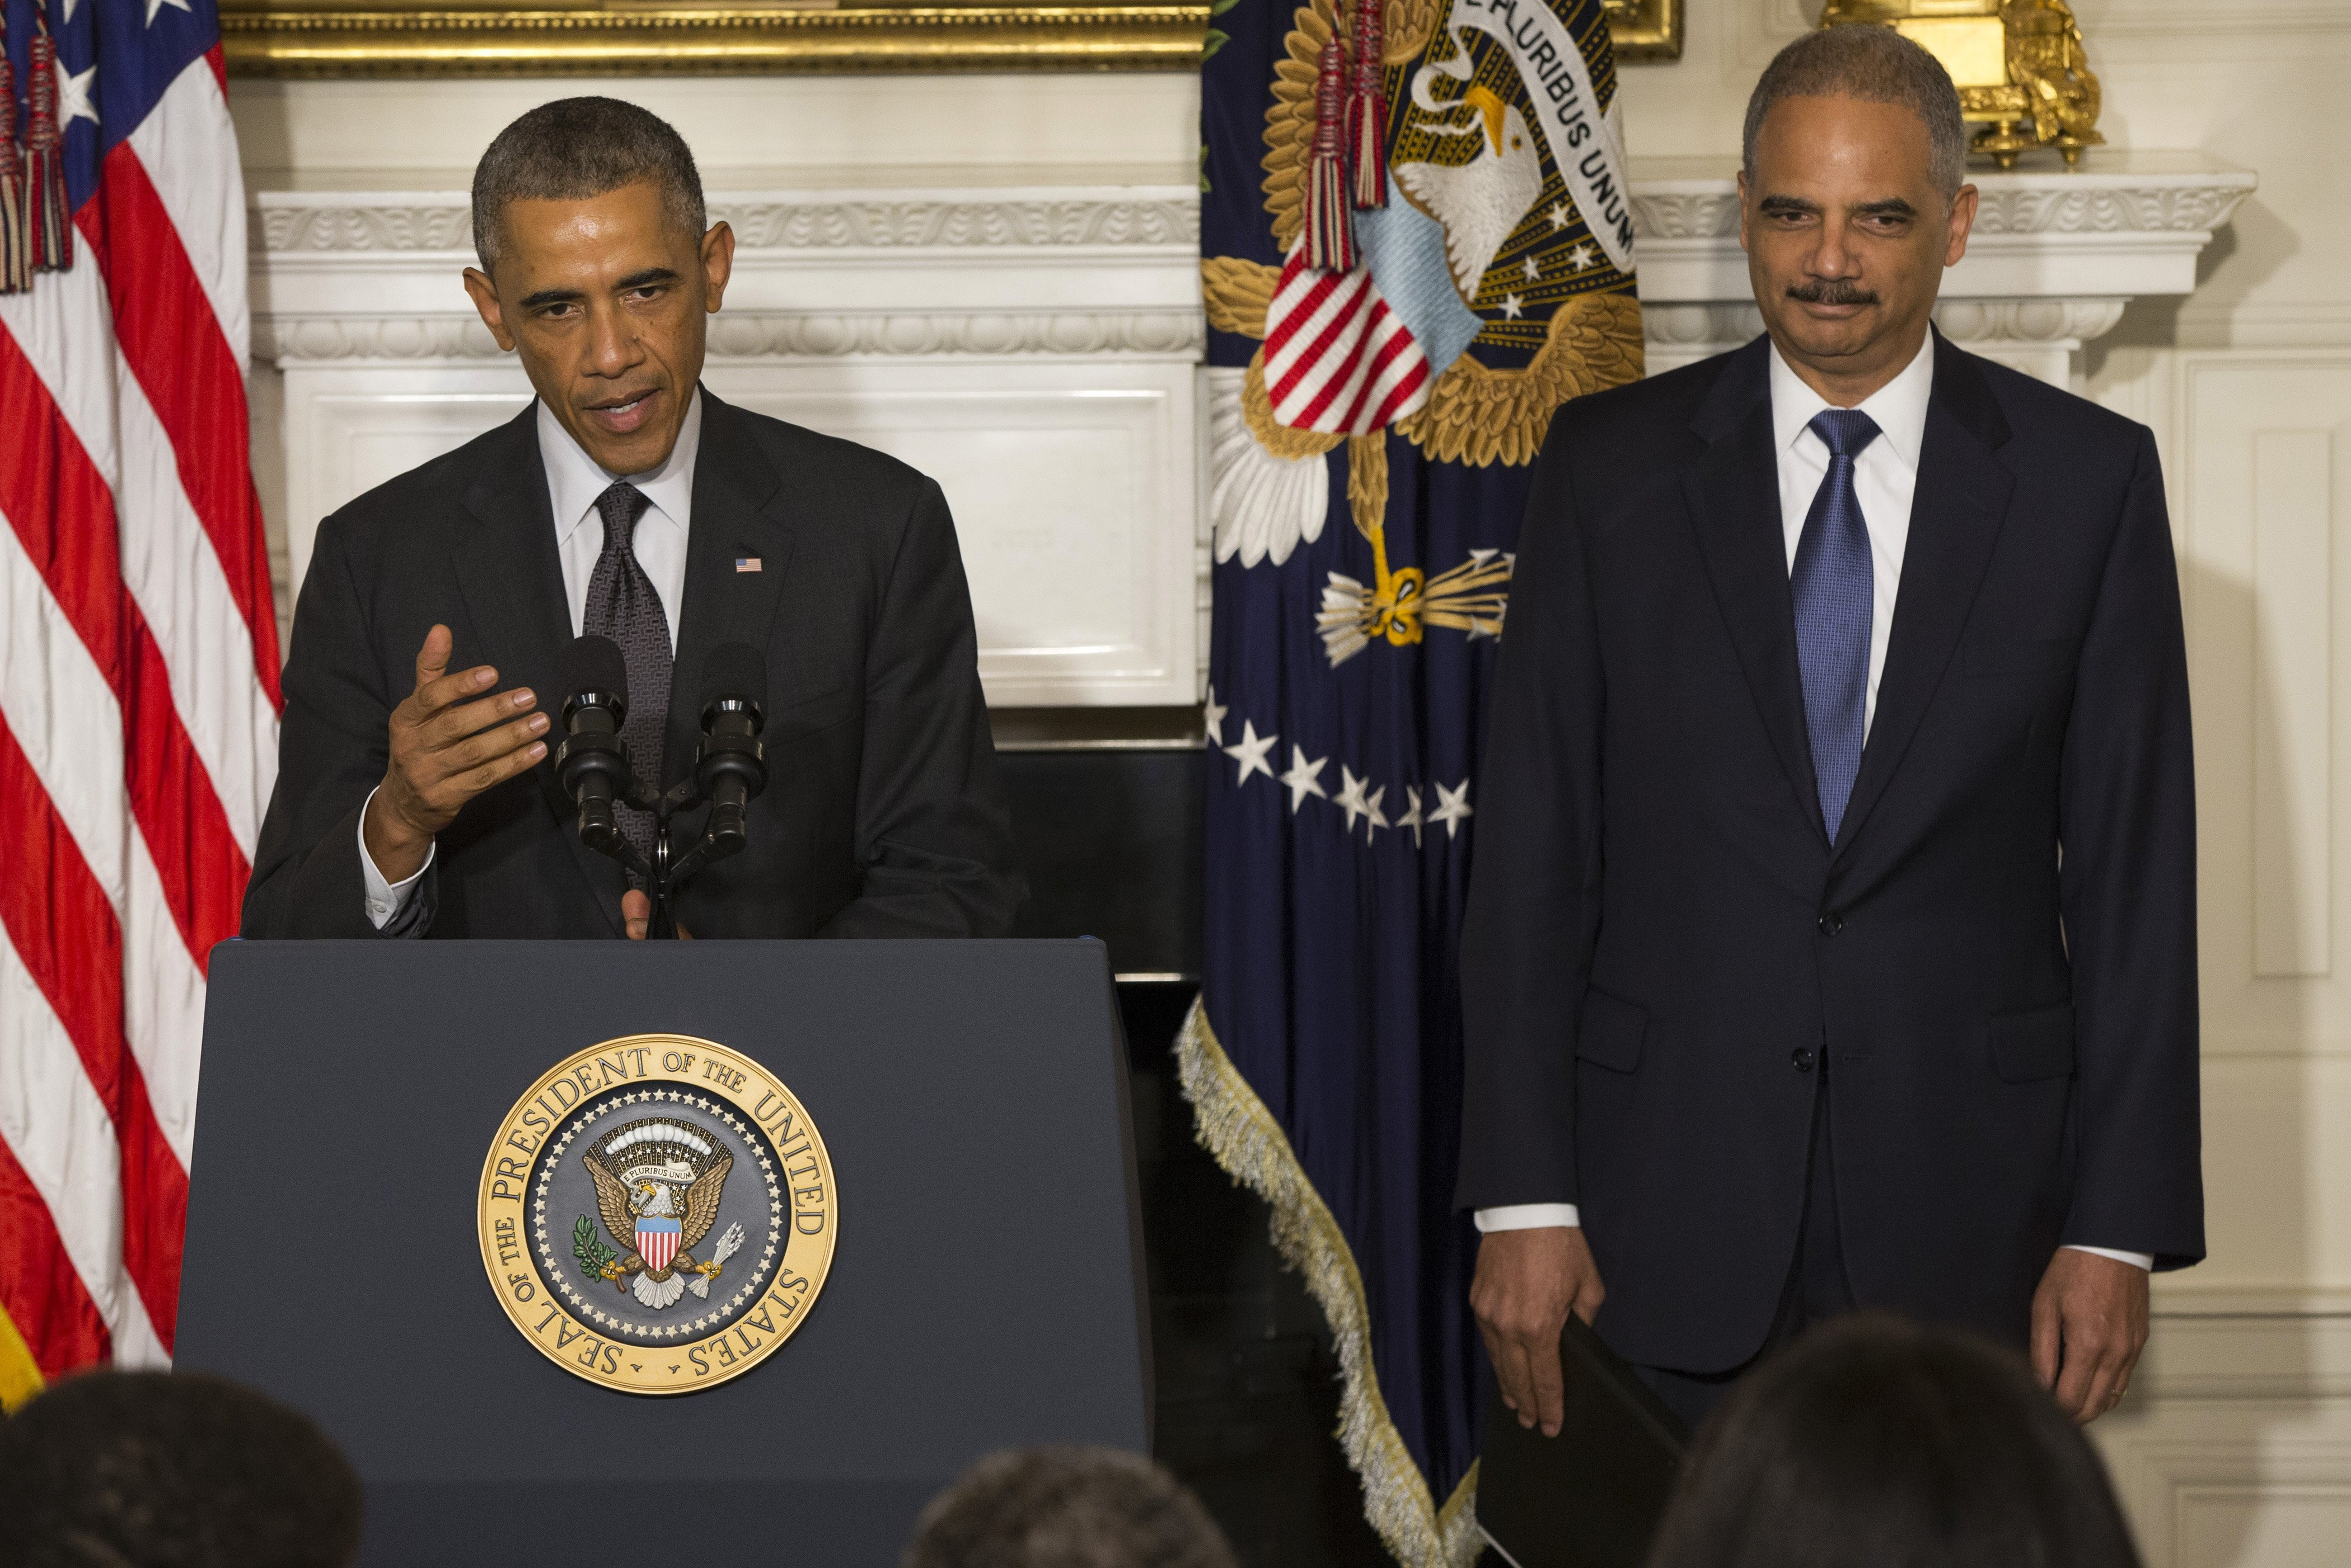 President Barack Obama, accompanied by Attorney General Eric Holder, speaks in the State Dining Room of the White House in Washington, Thursday, Sept. 25, 2014, to announce Holder is resigning.